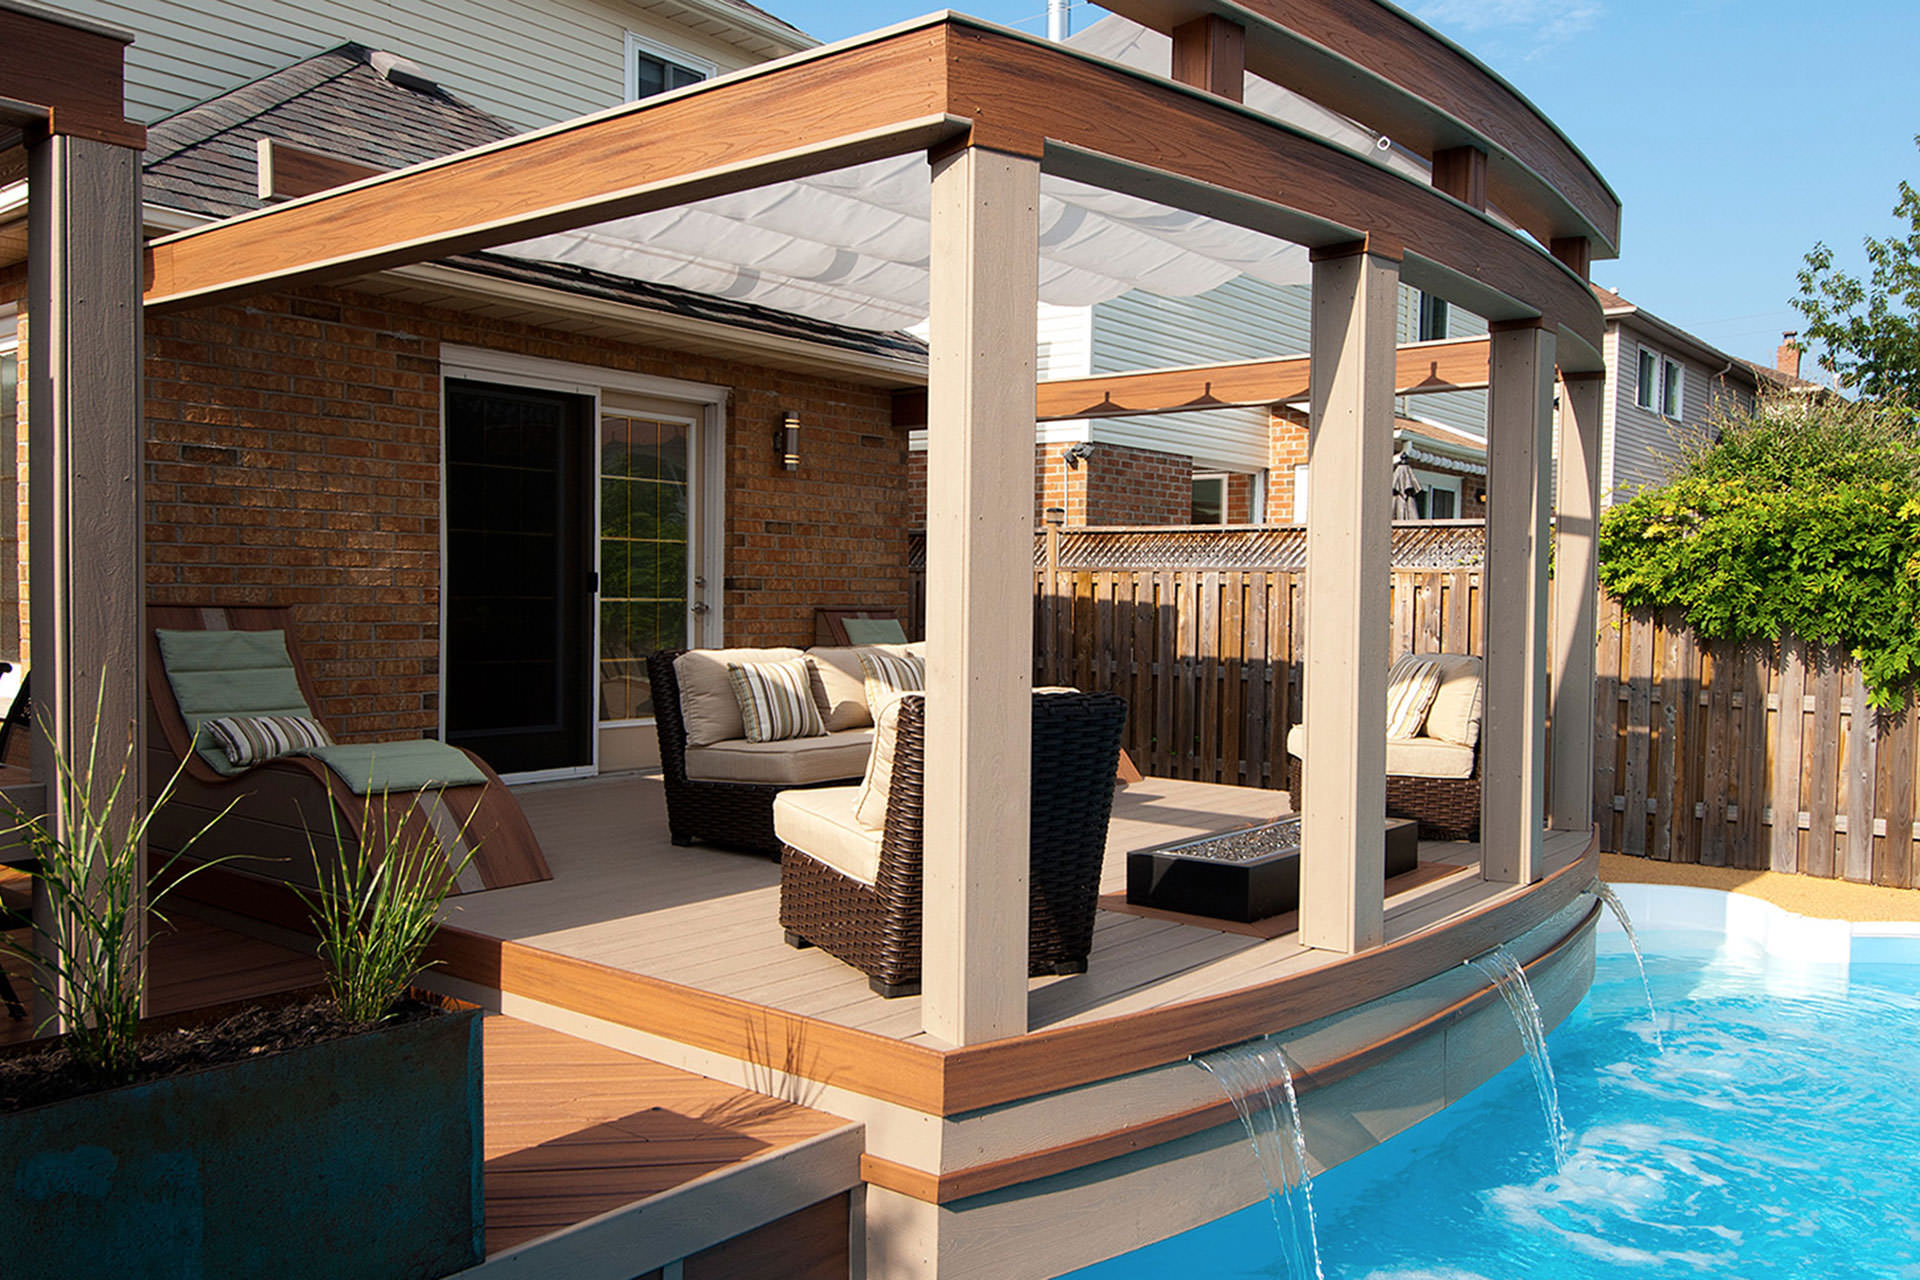 Retractable Patio Cover Hgtv S Decked Out